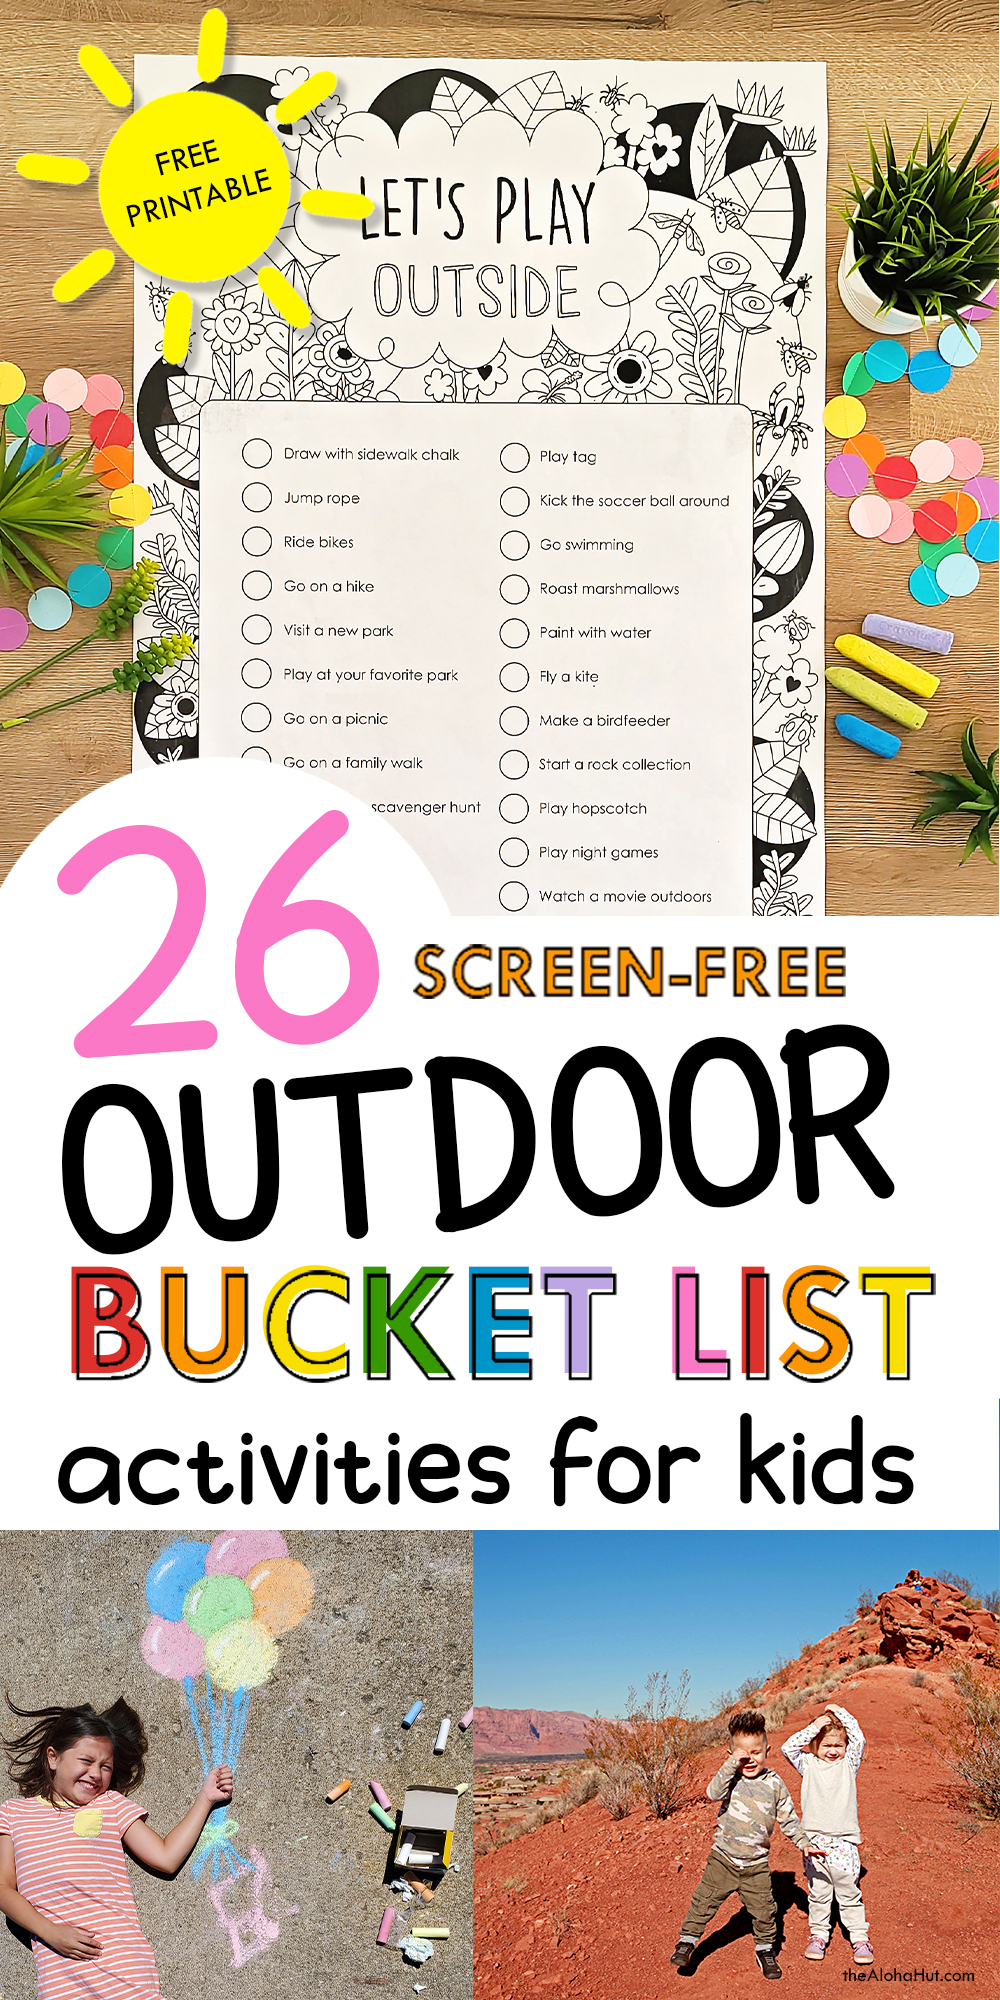 26 Outdoor Activities for Kids - free printable by the Aloha Hut